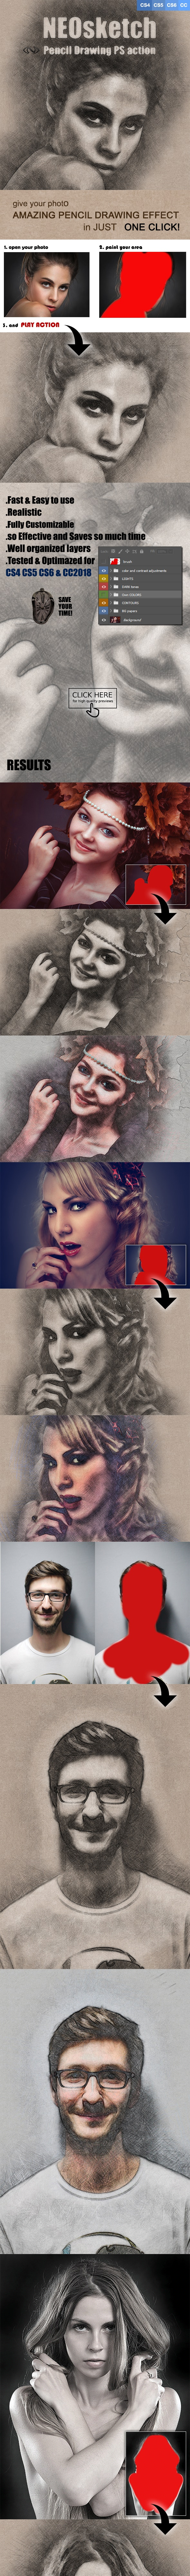 NEOsketch Pencil Drawing Photoshop Action - Photo Effects Actions